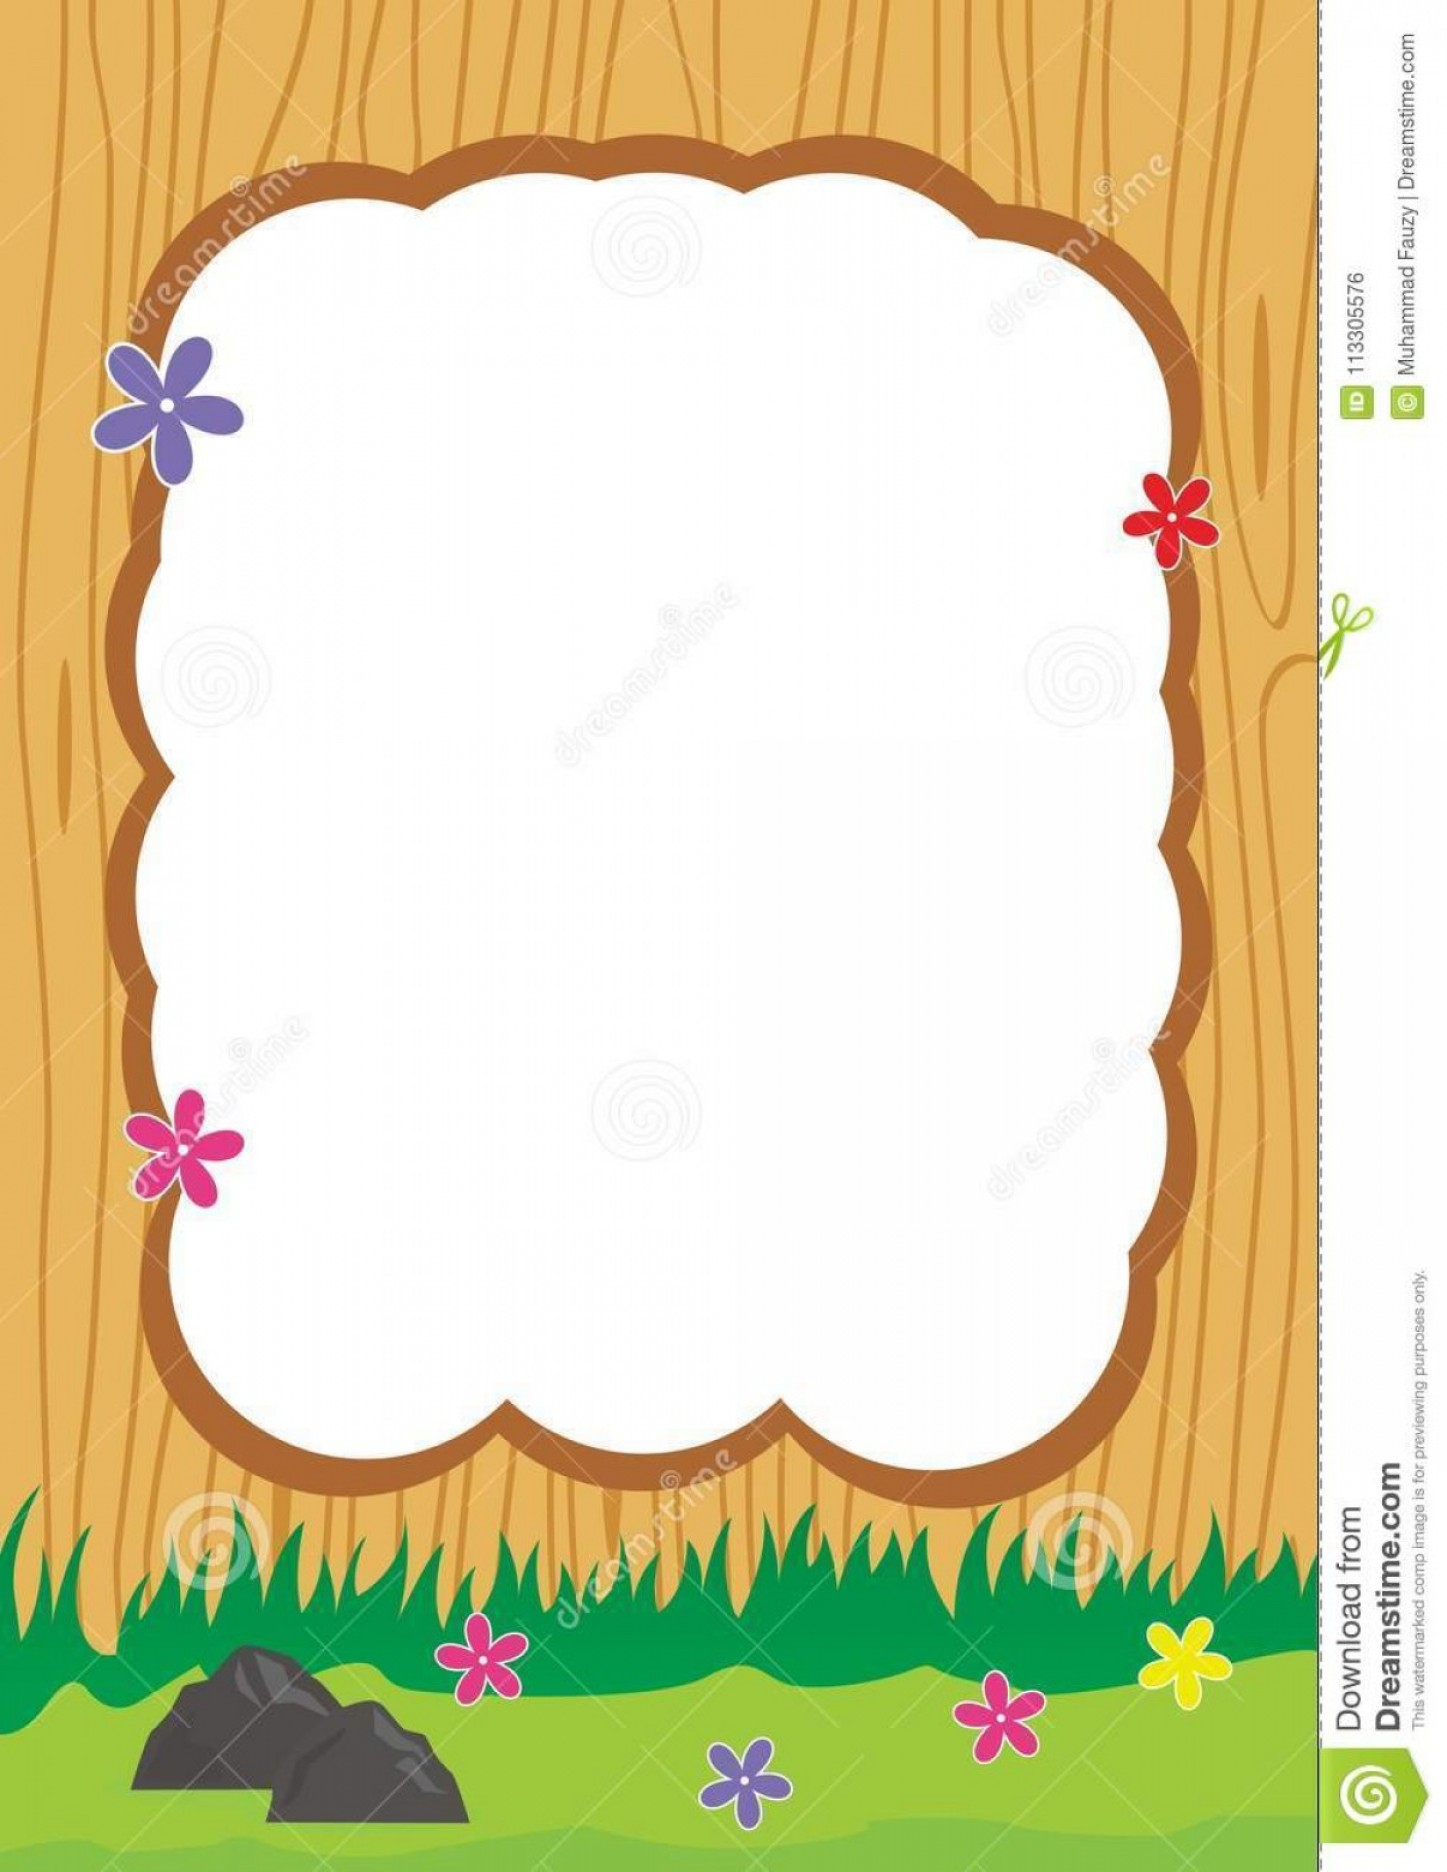 Beautiful borders and frames clipart clip art transparent Cute Frame Border Decorated Beautiful Flower Wood Frame Vector Wood ... clip art transparent